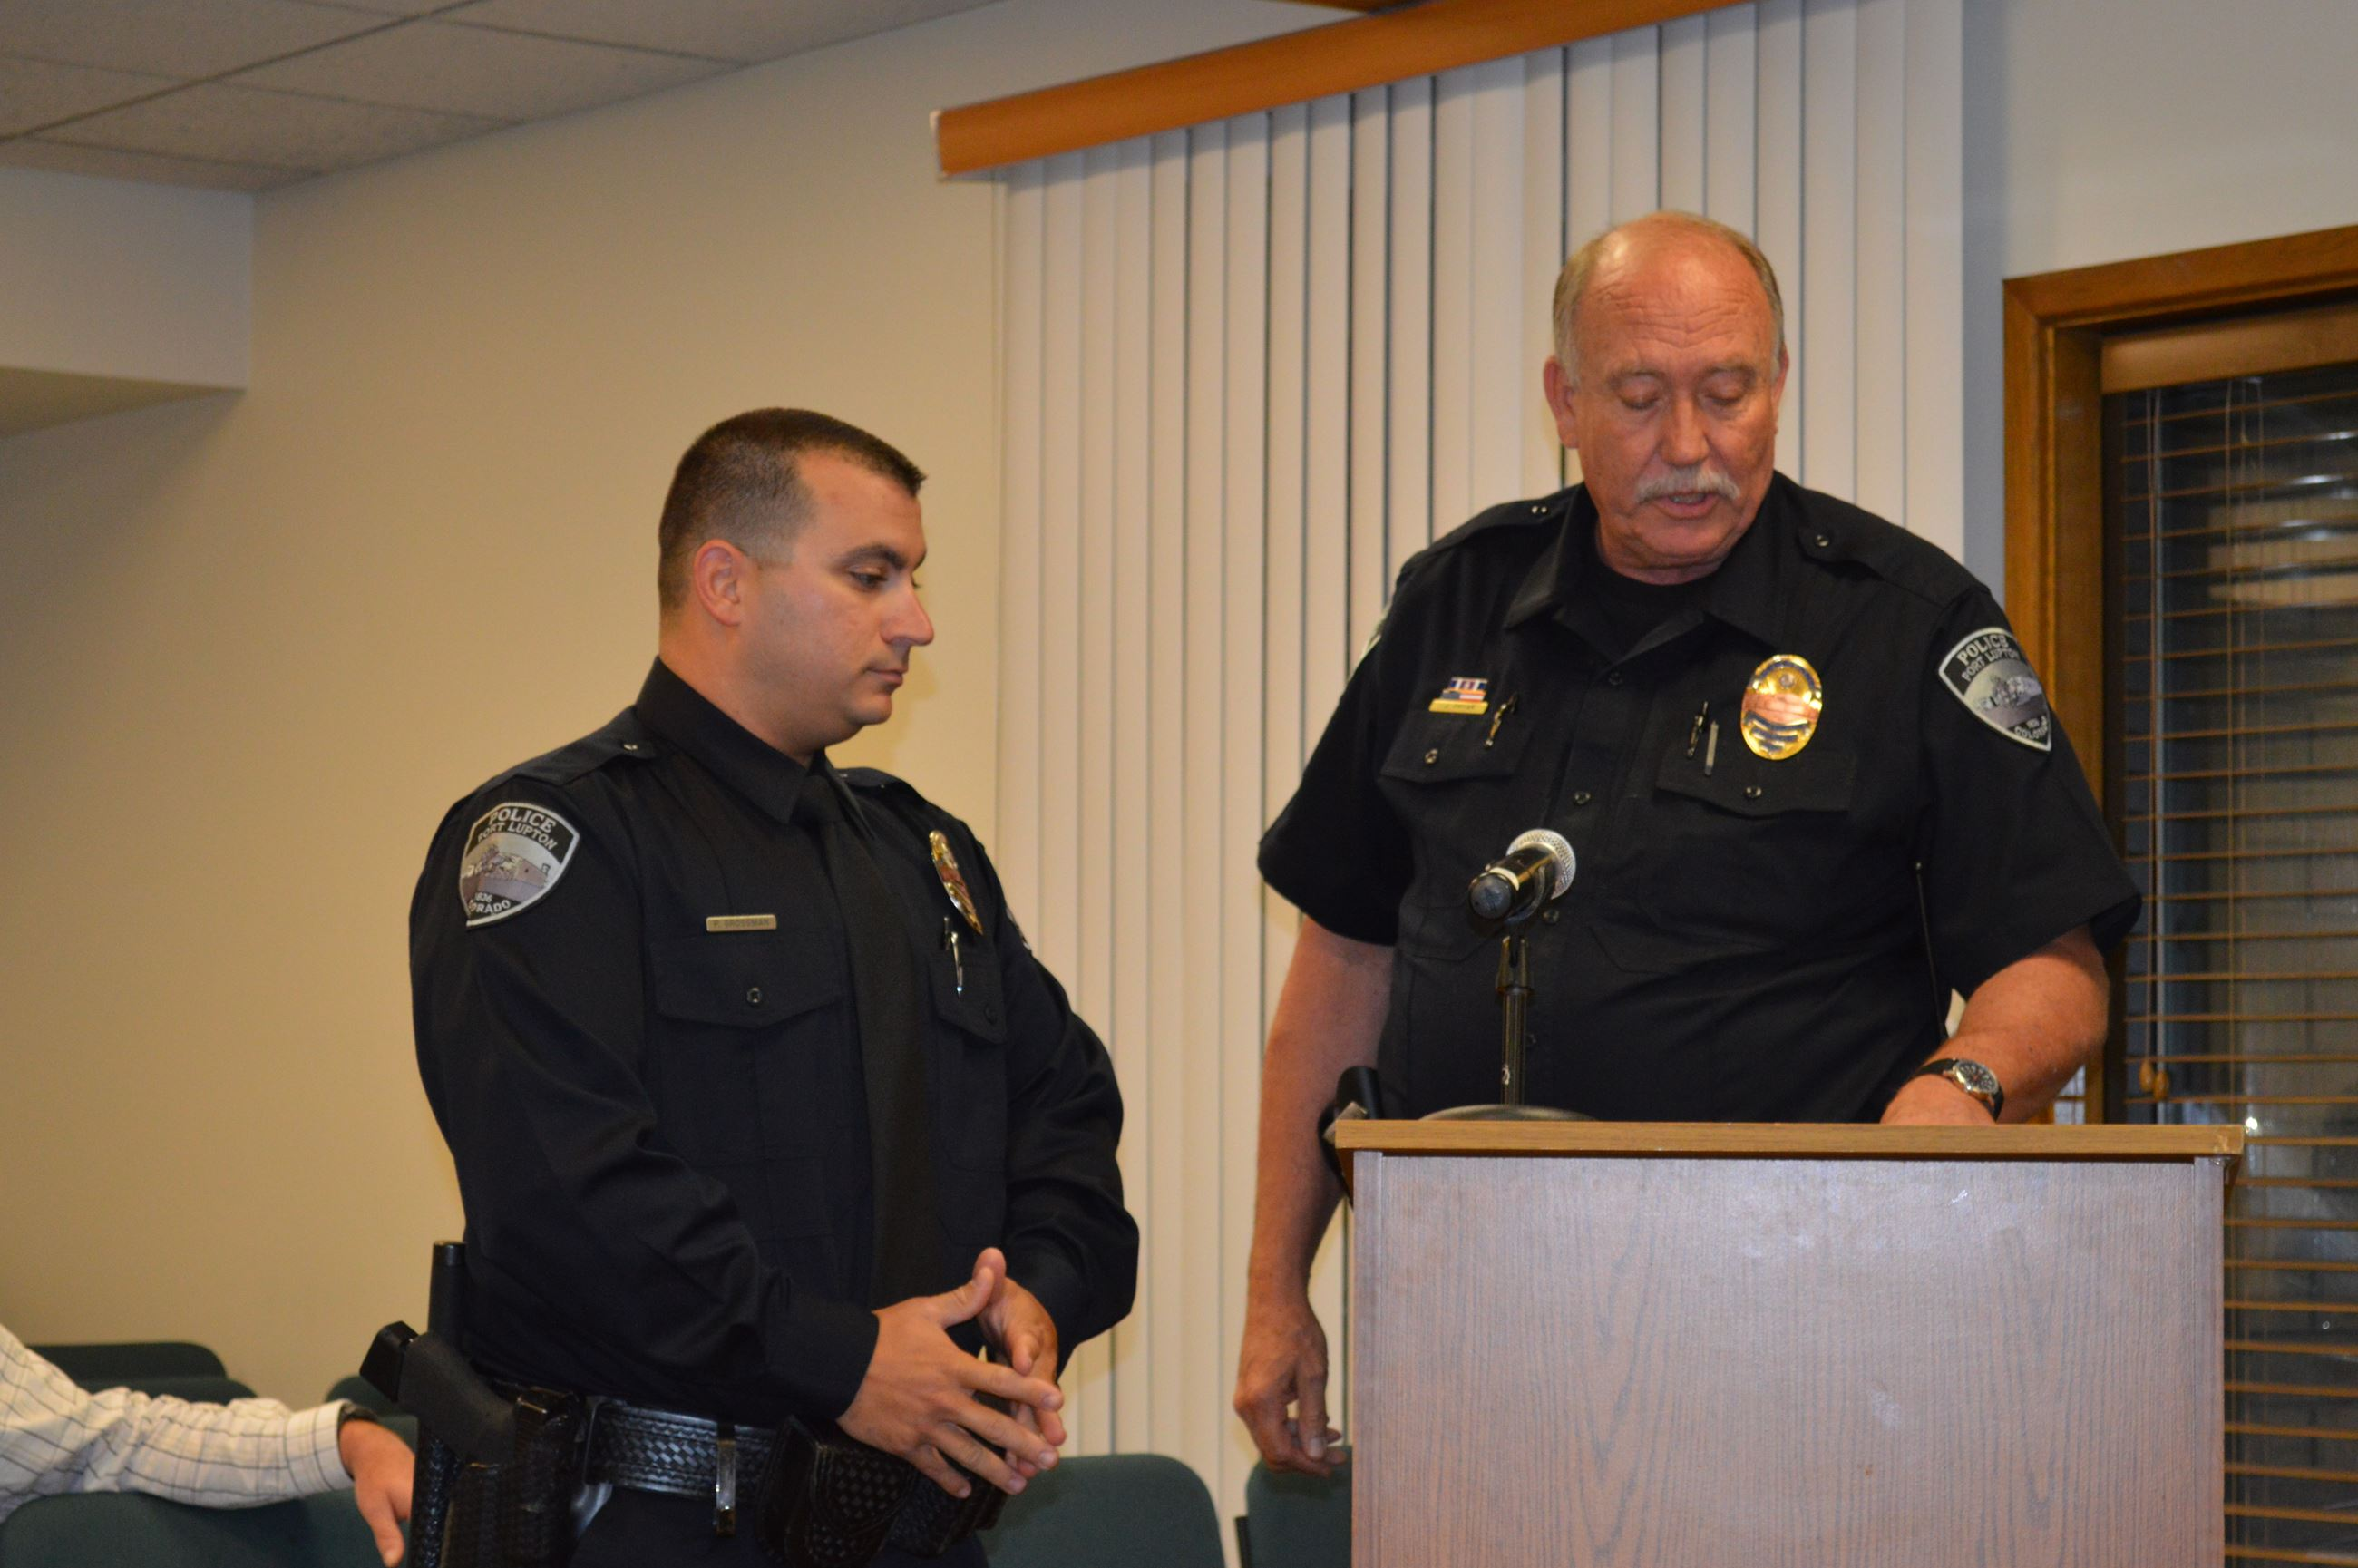 Officer Wyard Receives Recognition for Life Saving Action